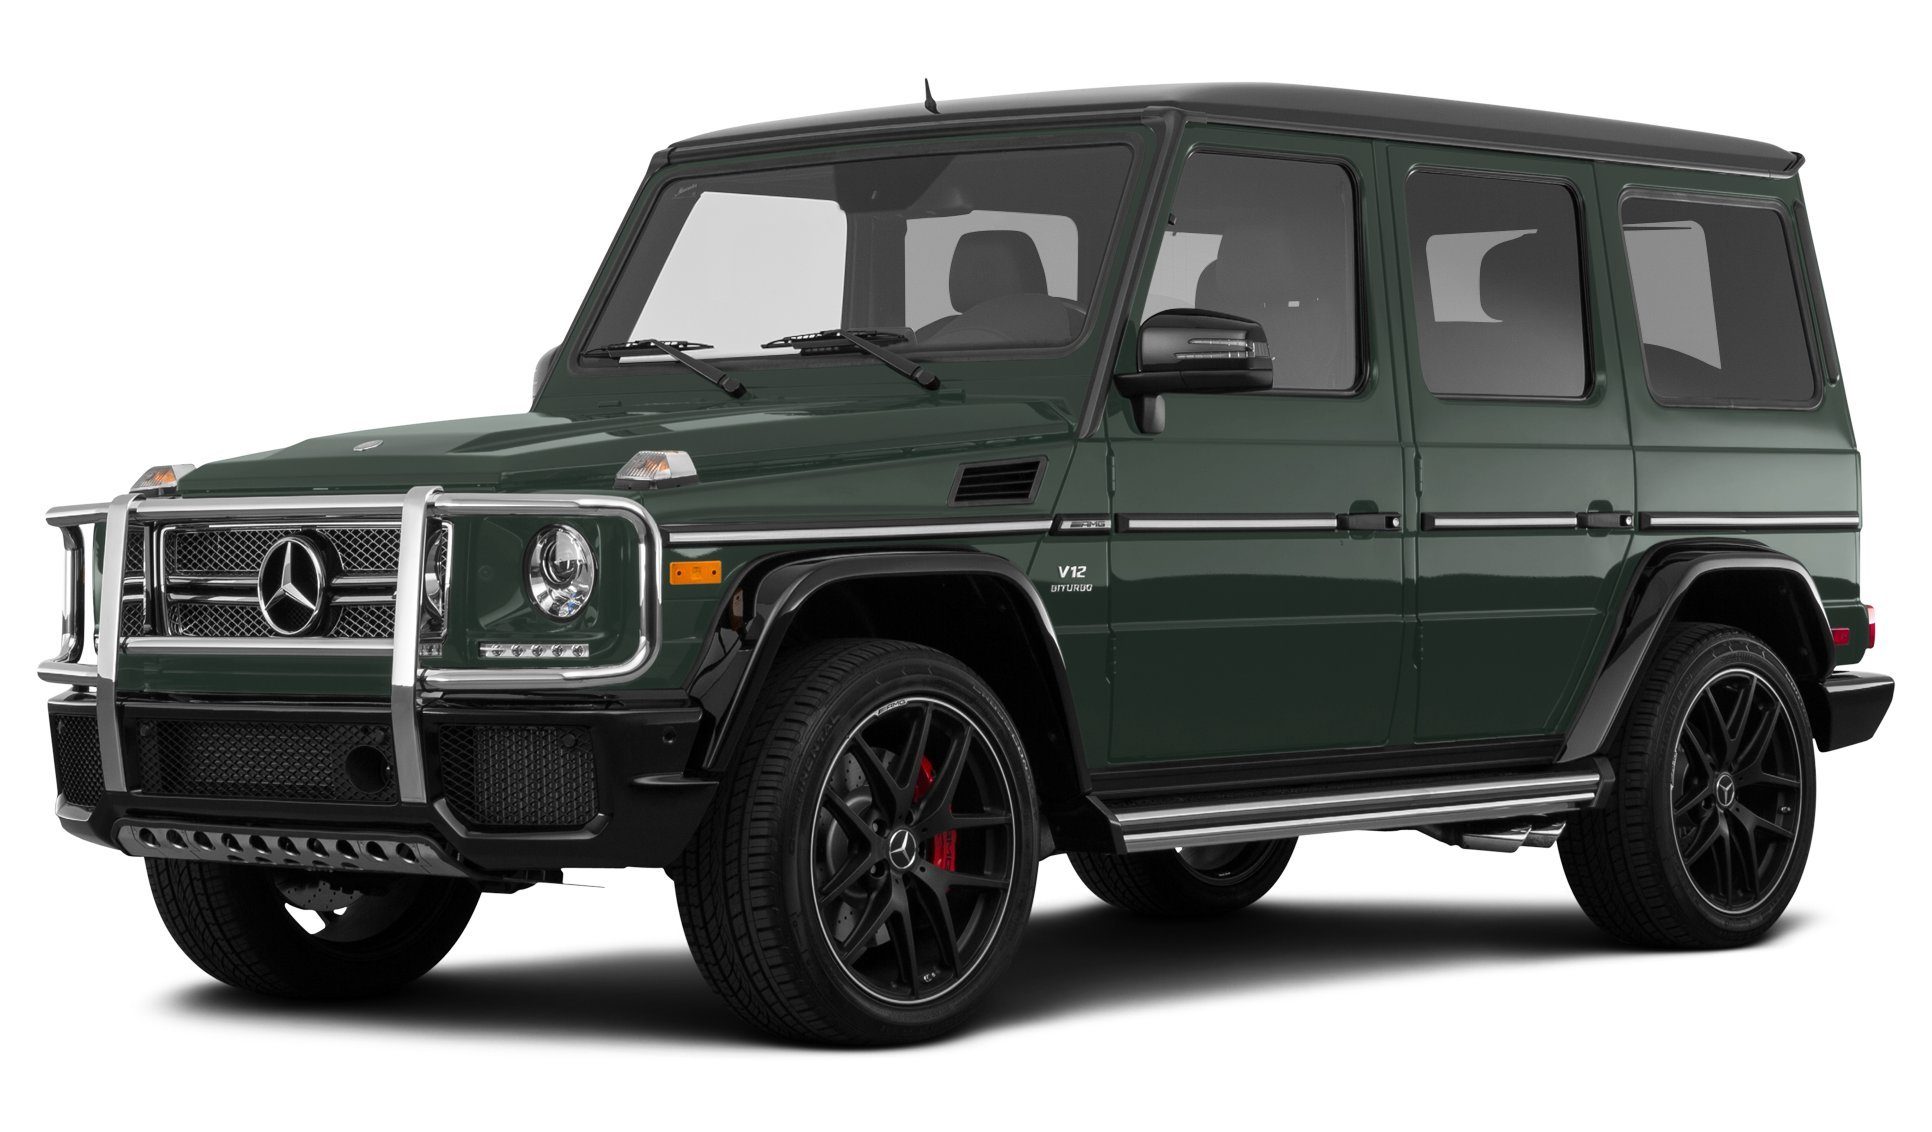 2017 Mercedes Benz G63 AMG 4MATIC SUV